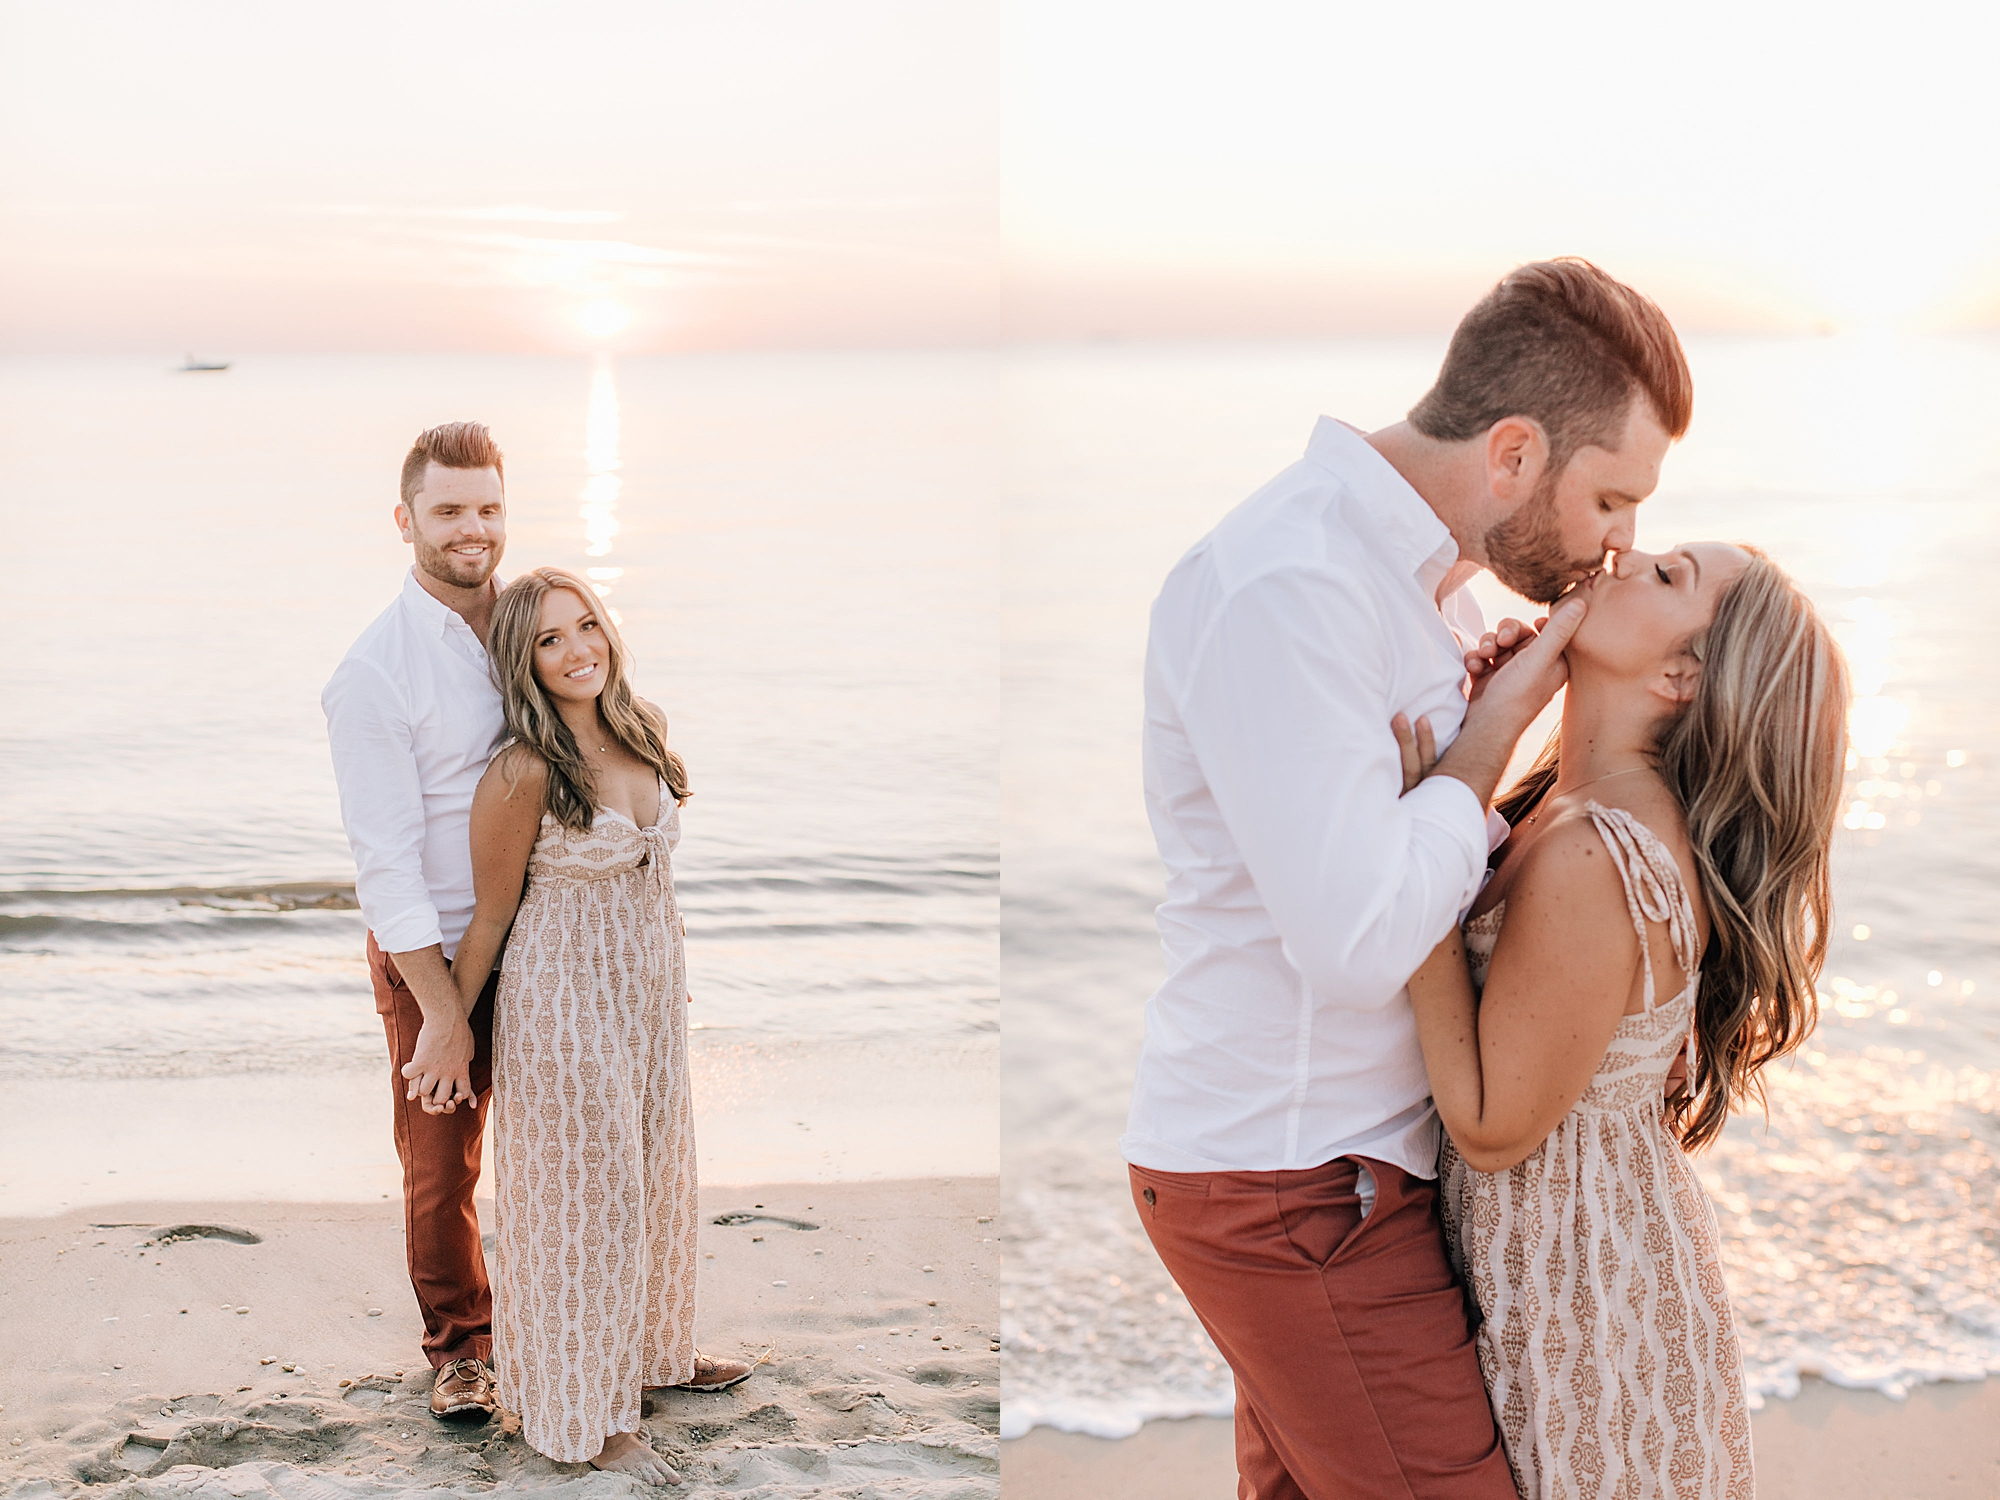 Engagement Session Outfit Inspiration by Magdalena Studios 0022